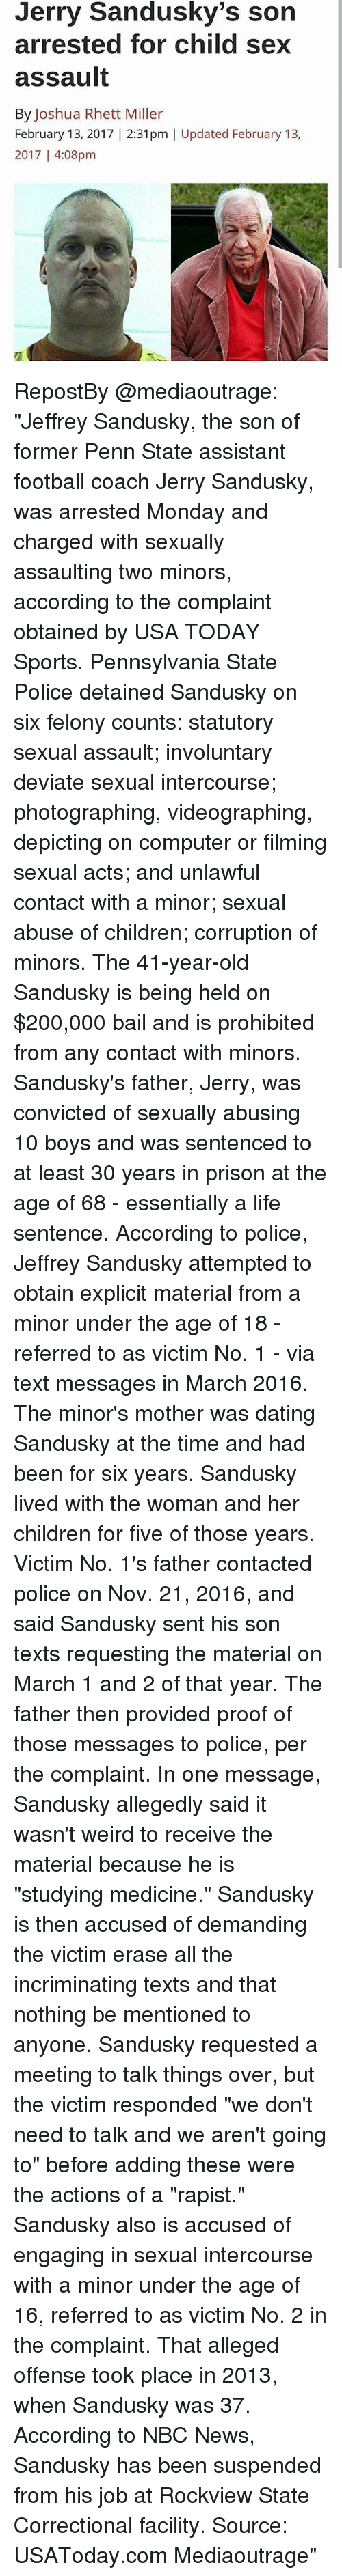 """Jerry Sandusky: Jerry Sandusky's son  arrested for Child Sex  assault  By Joshua Rhett Miller  February 13, 2017 2:31pm Updated February 13,  2017 4:08pm RepostBy @mediaoutrage: """"Jeffrey Sandusky, the son of former Penn State assistant football coach Jerry Sandusky, was arrested Monday and charged with sexually assaulting two minors, according to the complaint obtained by USA TODAY Sports. Pennsylvania State Police detained Sandusky on six felony counts: statutory sexual assault; involuntary deviate sexual intercourse; photographing, videographing, depicting on computer or filming sexual acts; and unlawful contact with a minor; sexual abuse of children; corruption of minors. The 41-year-old Sandusky is being held on $200,000 bail and is prohibited from any contact with minors. Sandusky's father, Jerry, was convicted of sexually abusing 10 boys and was sentenced to at least 30 years in prison at the age of 68 - essentially a life sentence. According to police, Jeffrey Sandusky attempted to obtain explicit material from a minor under the age of 18 - referred to as victim No. 1 - via text messages in March 2016. The minor's mother was dating Sandusky at the time and had been for six years. Sandusky lived with the woman and her children for five of those years. Victim No. 1's father contacted police on Nov. 21, 2016, and said Sandusky sent his son texts requesting the material on March 1 and 2 of that year. The father then provided proof of those messages to police, per the complaint. In one message, Sandusky allegedly said it wasn't weird to receive the material because he is """"studying medicine."""" Sandusky is then accused of demanding the victim erase all the incriminating texts and that nothing be mentioned to anyone. Sandusky requested a meeting to talk things over, but the victim responded """"we don't need to talk and we aren't going to"""" before adding these were the actions of a """"rapist."""" Sandusky also is accused of engaging in sexual intercourse with a minor under the"""